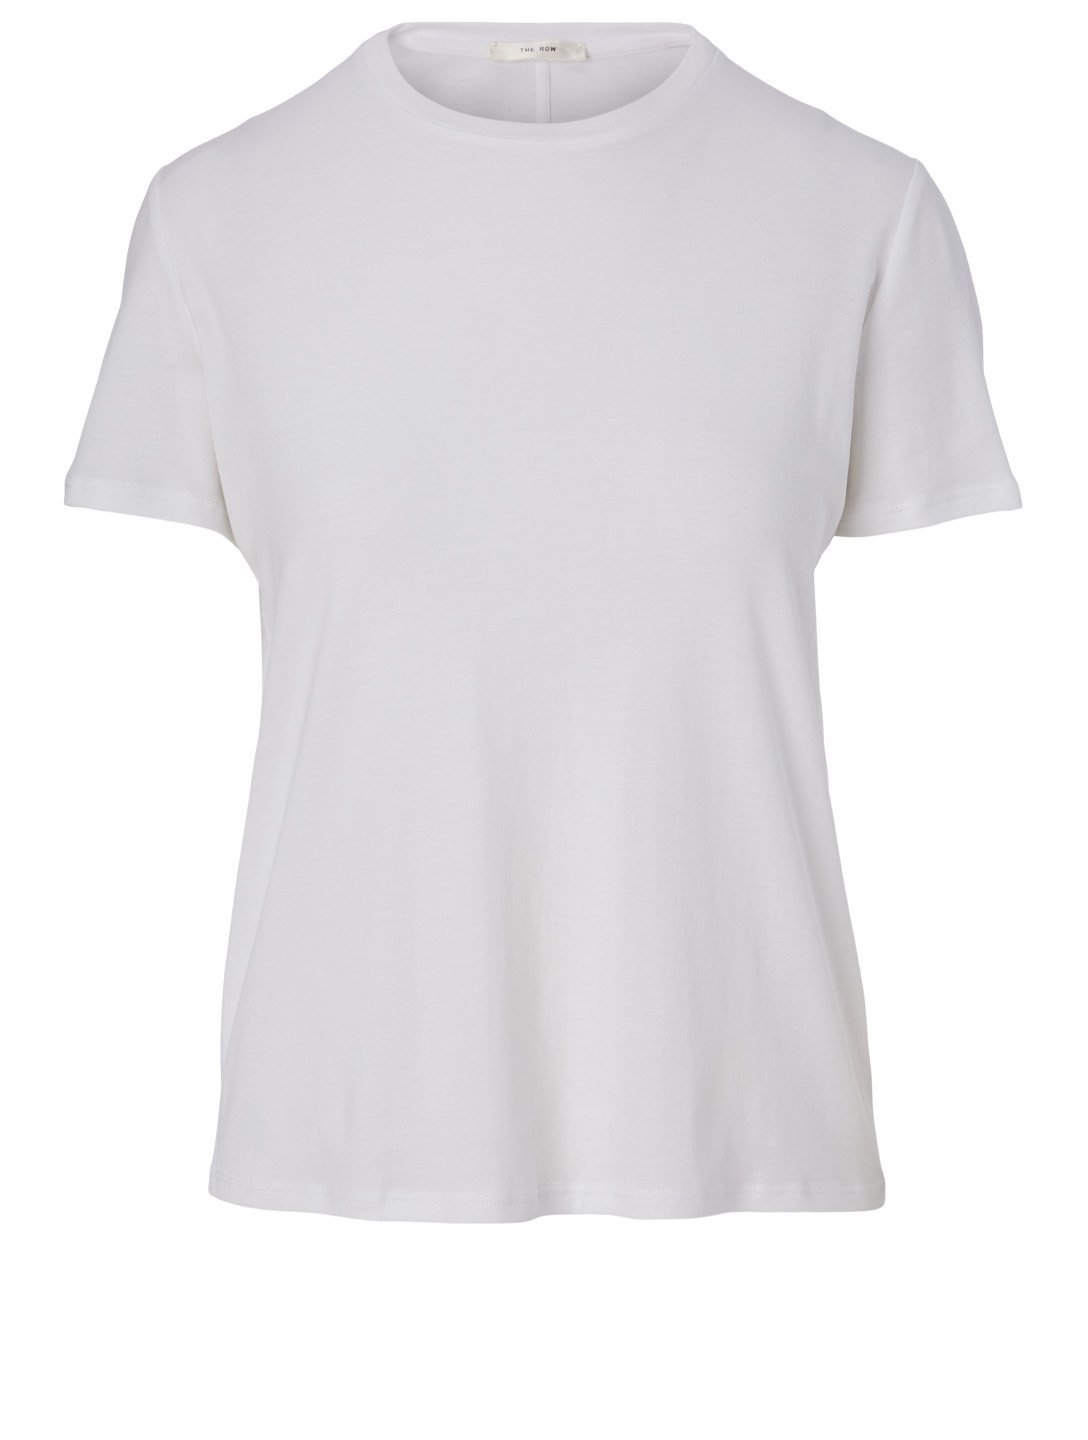 THE ROW Wesler Cotton T-Shirt Women's White